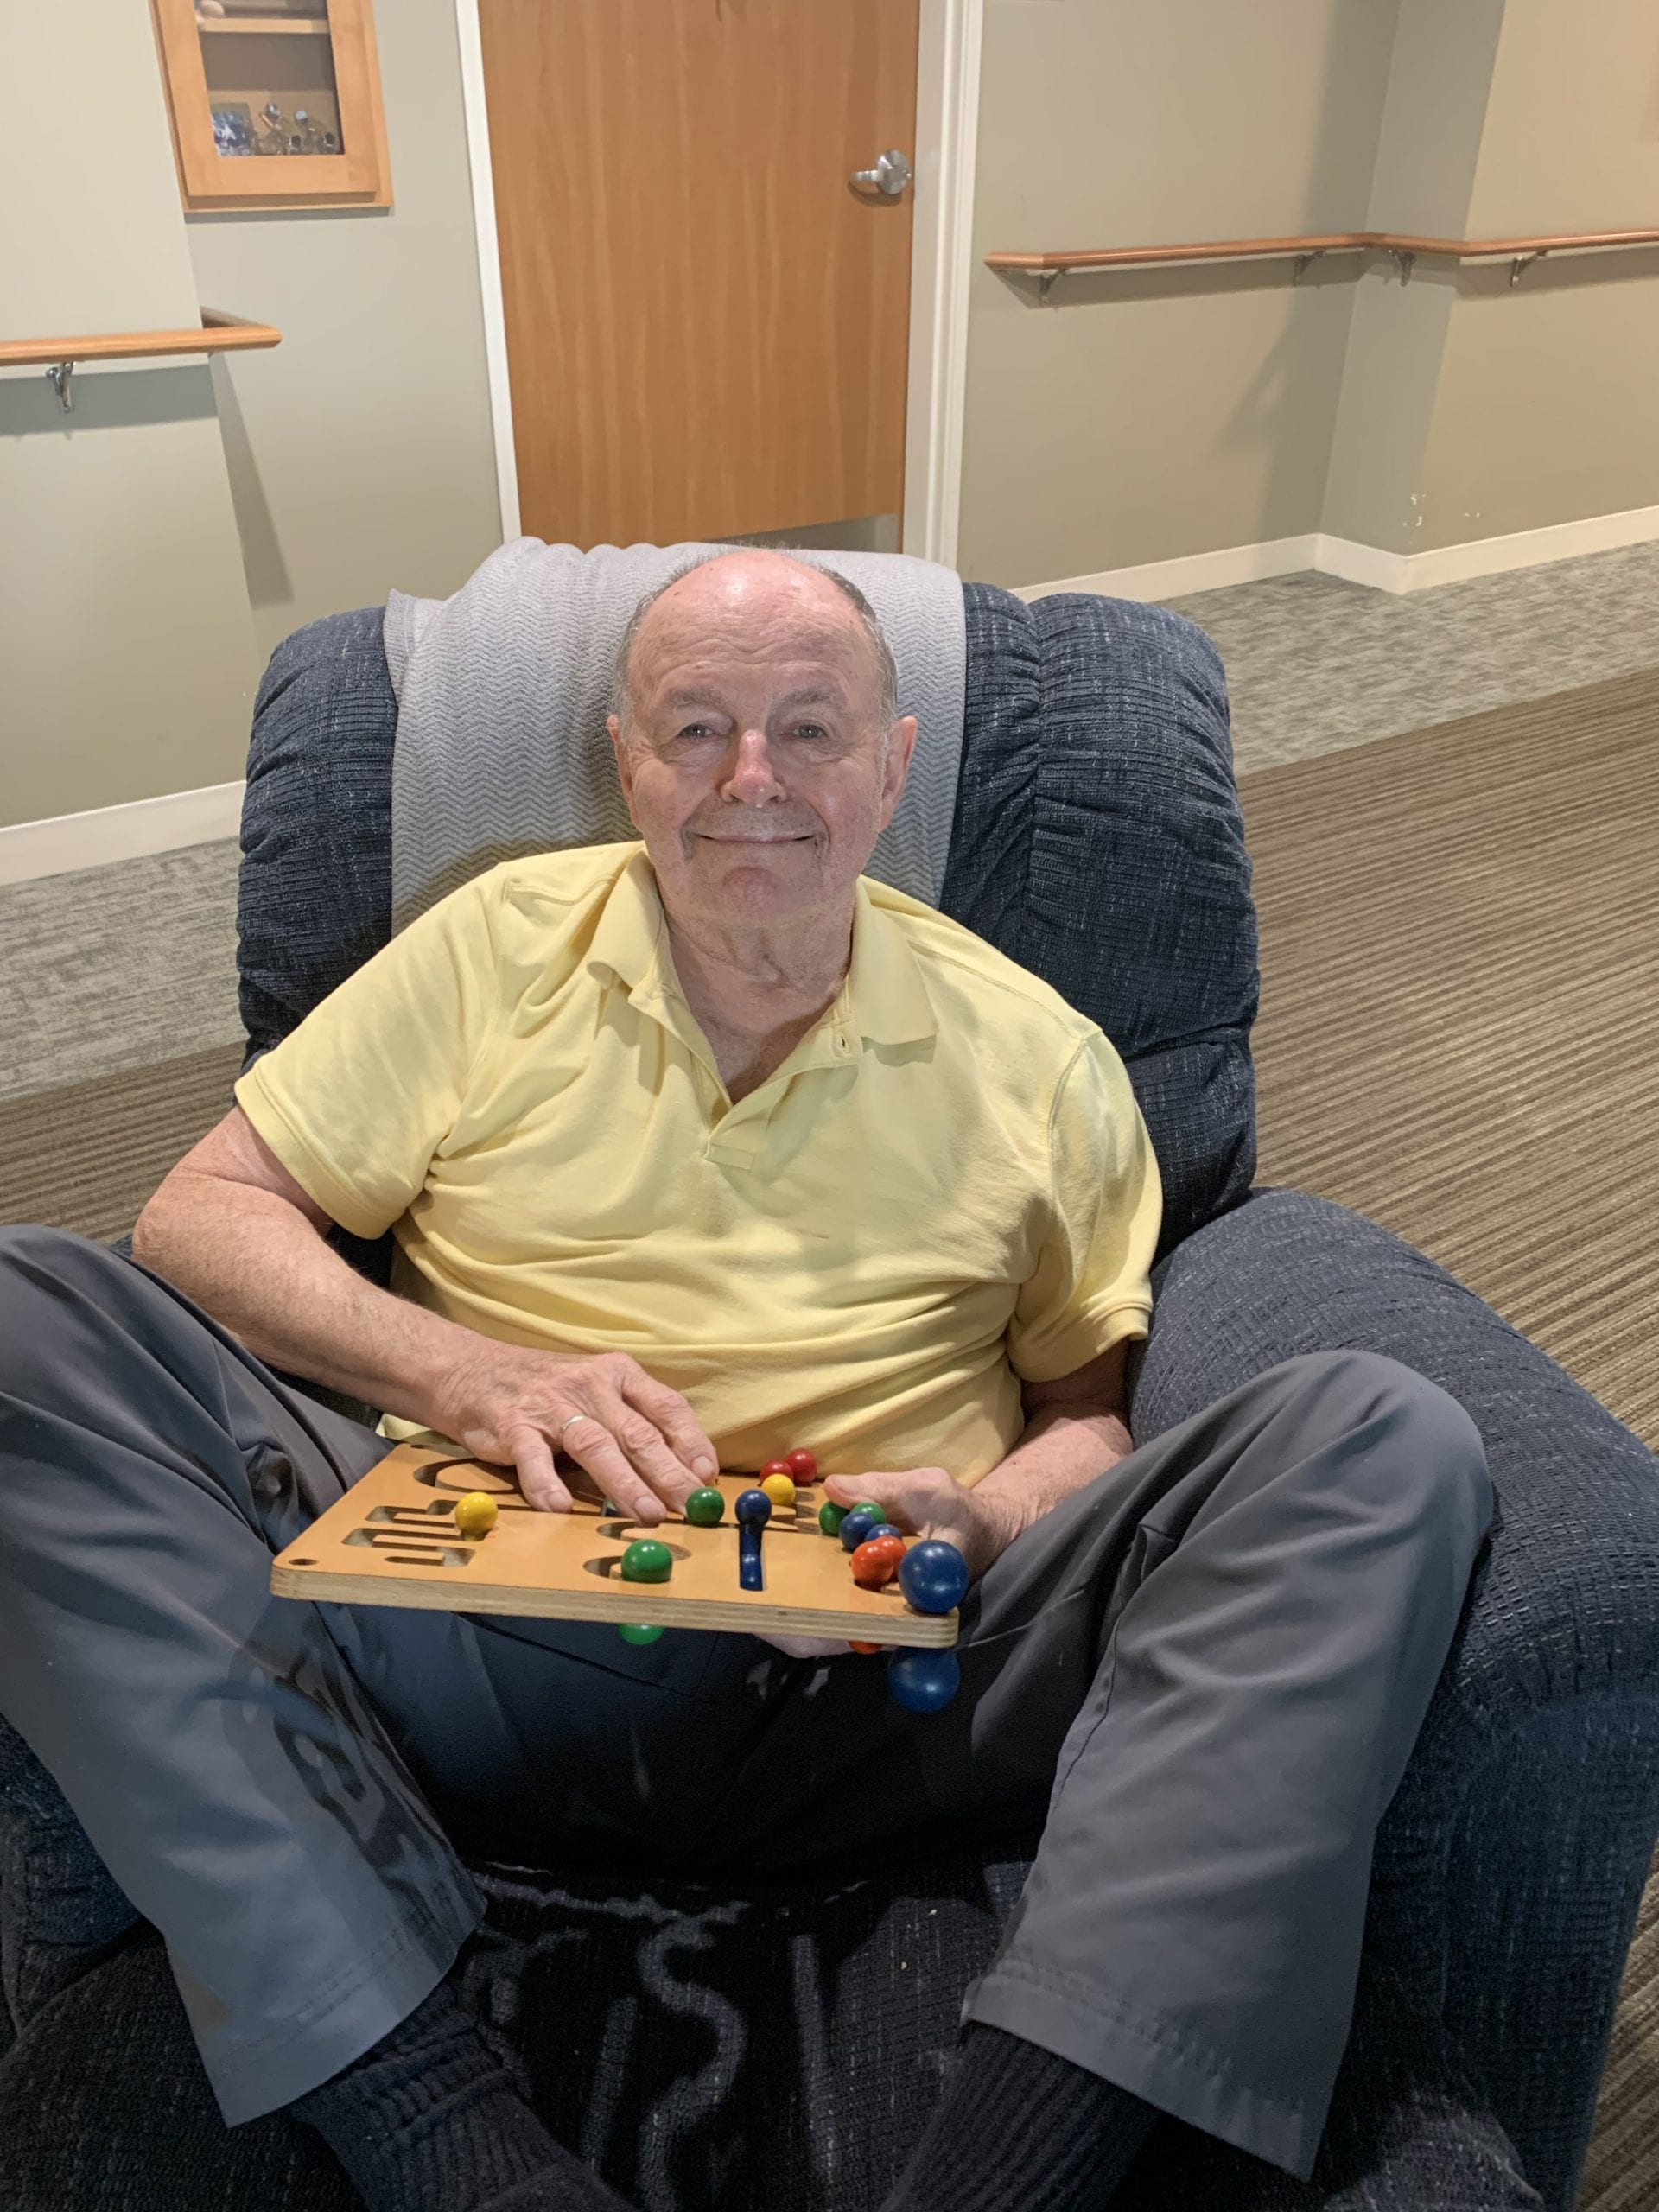 Senior man smiles while sitting in chair with board game